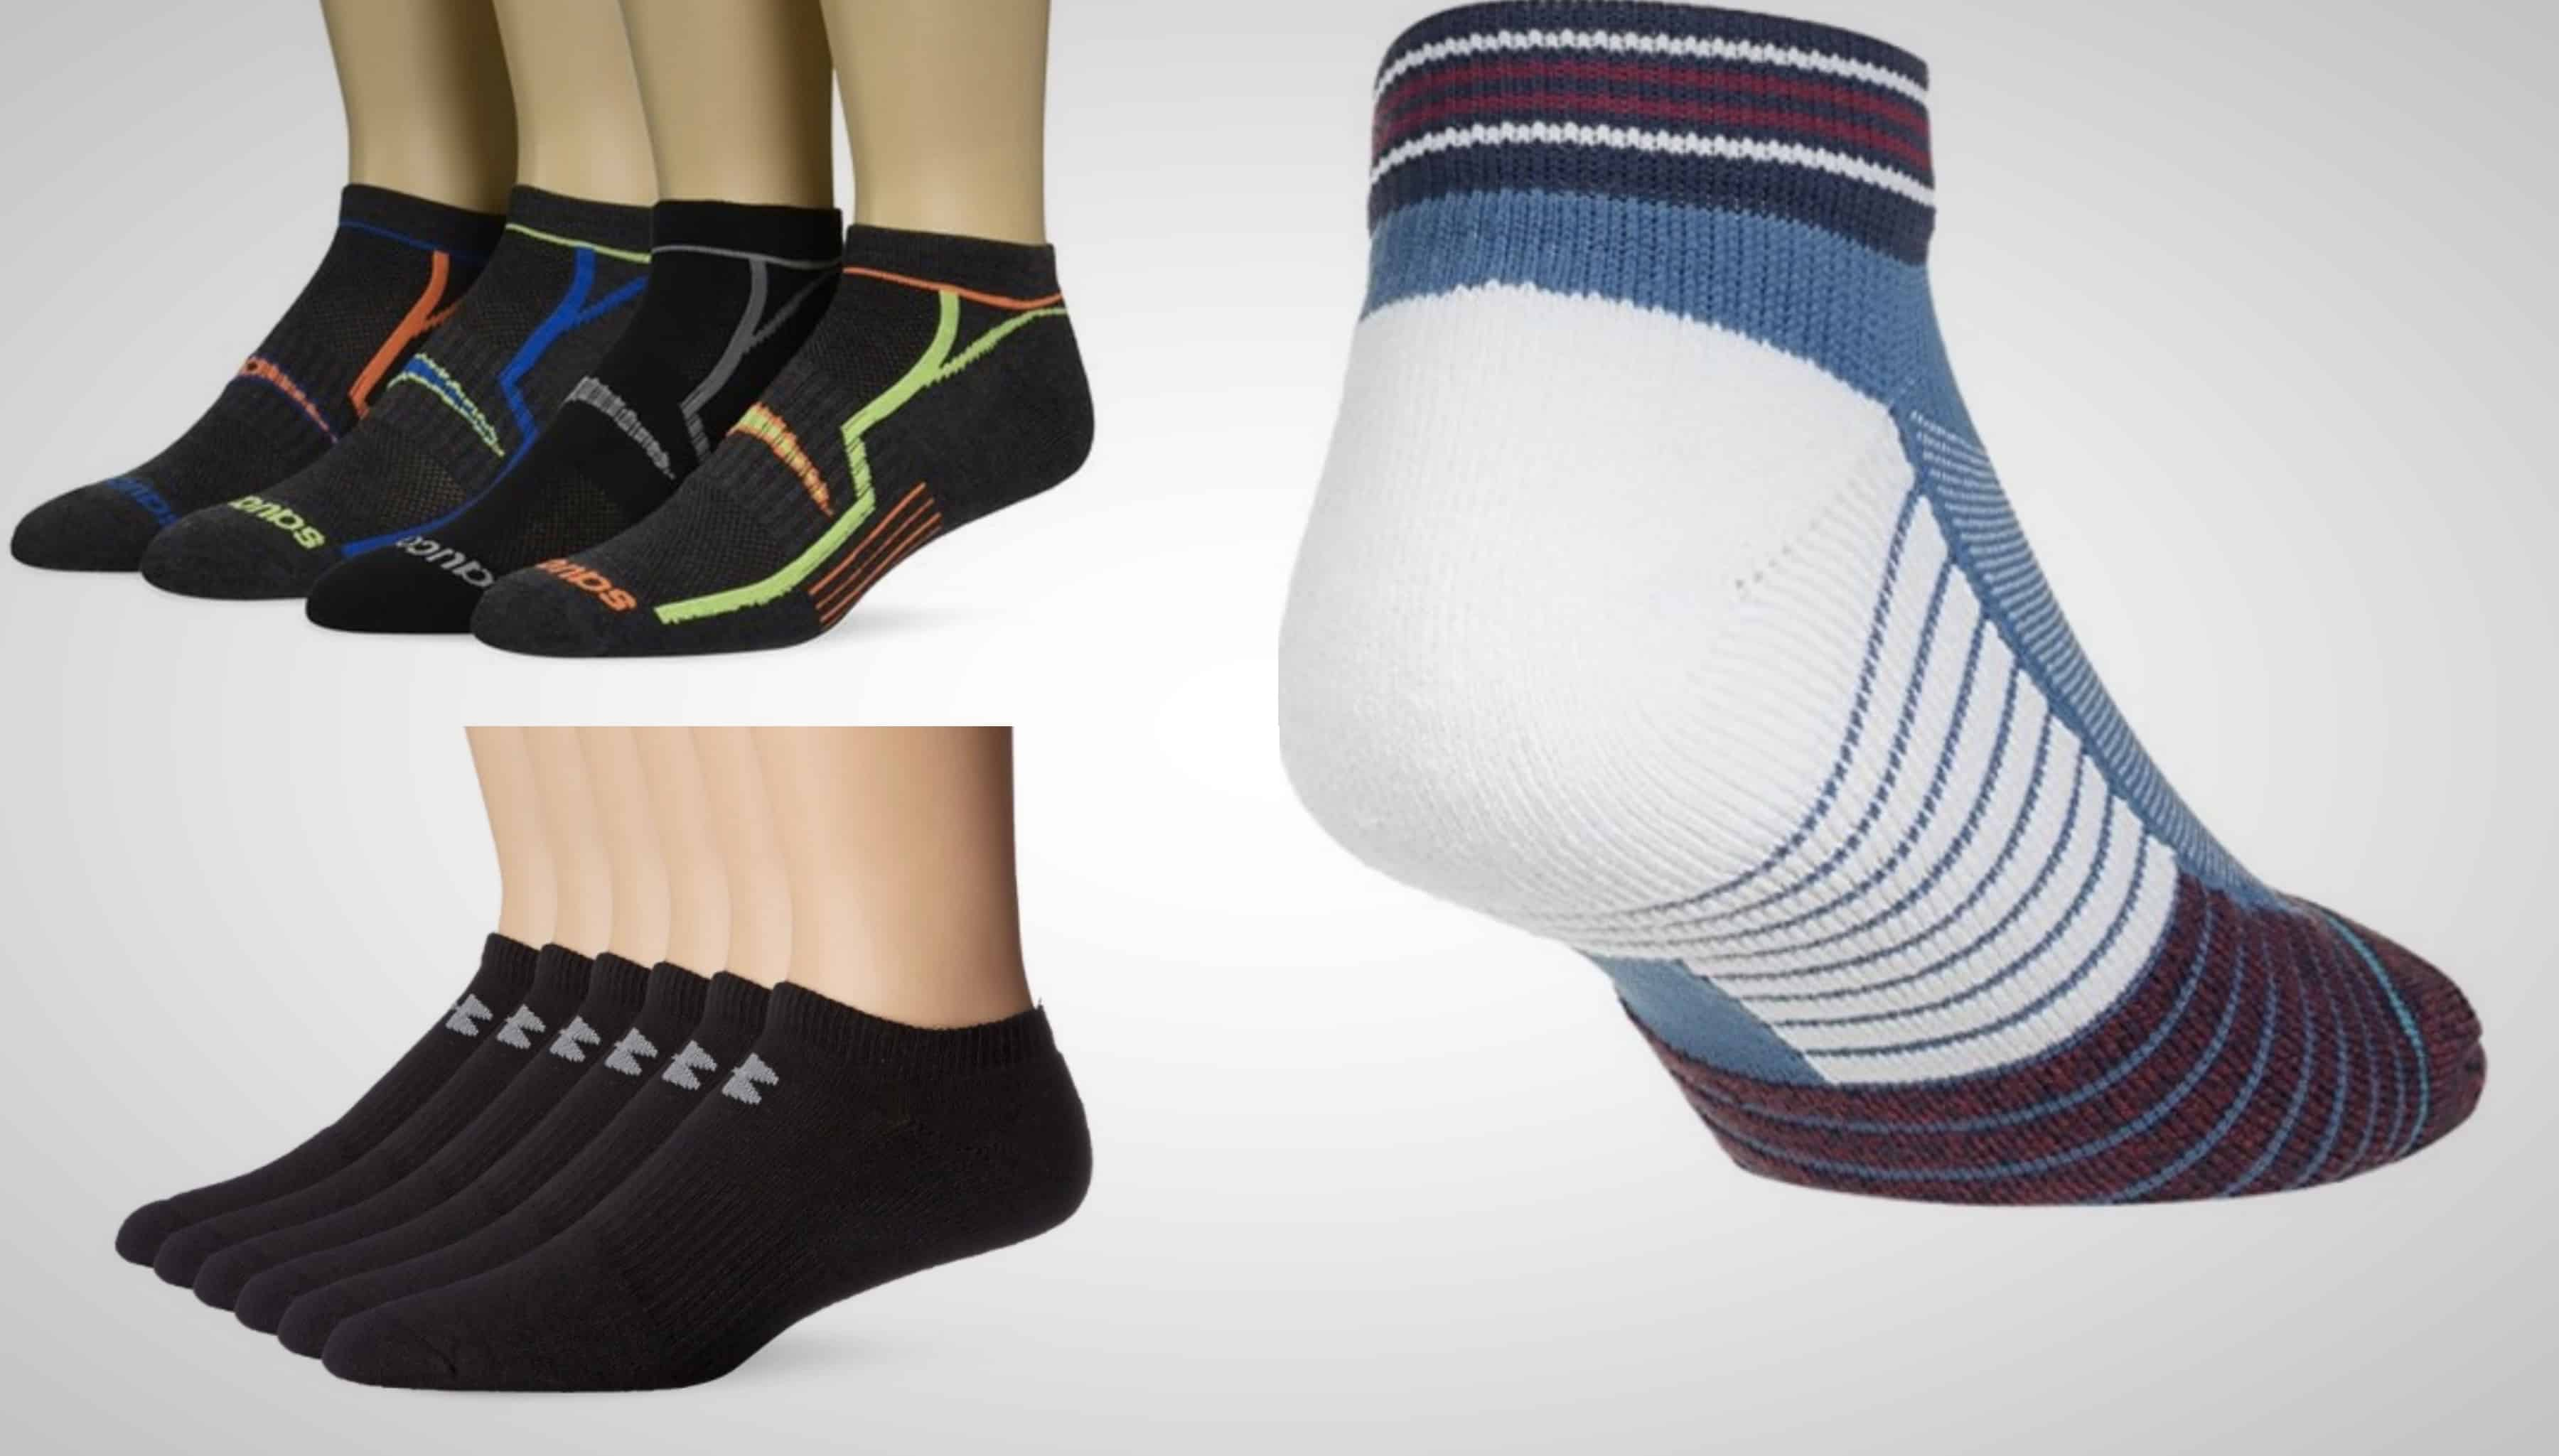 Review the top rated Men's Athletic Socks for Oct based on consumer reviews. Shop today and save on the best Men's Athletic Socks.